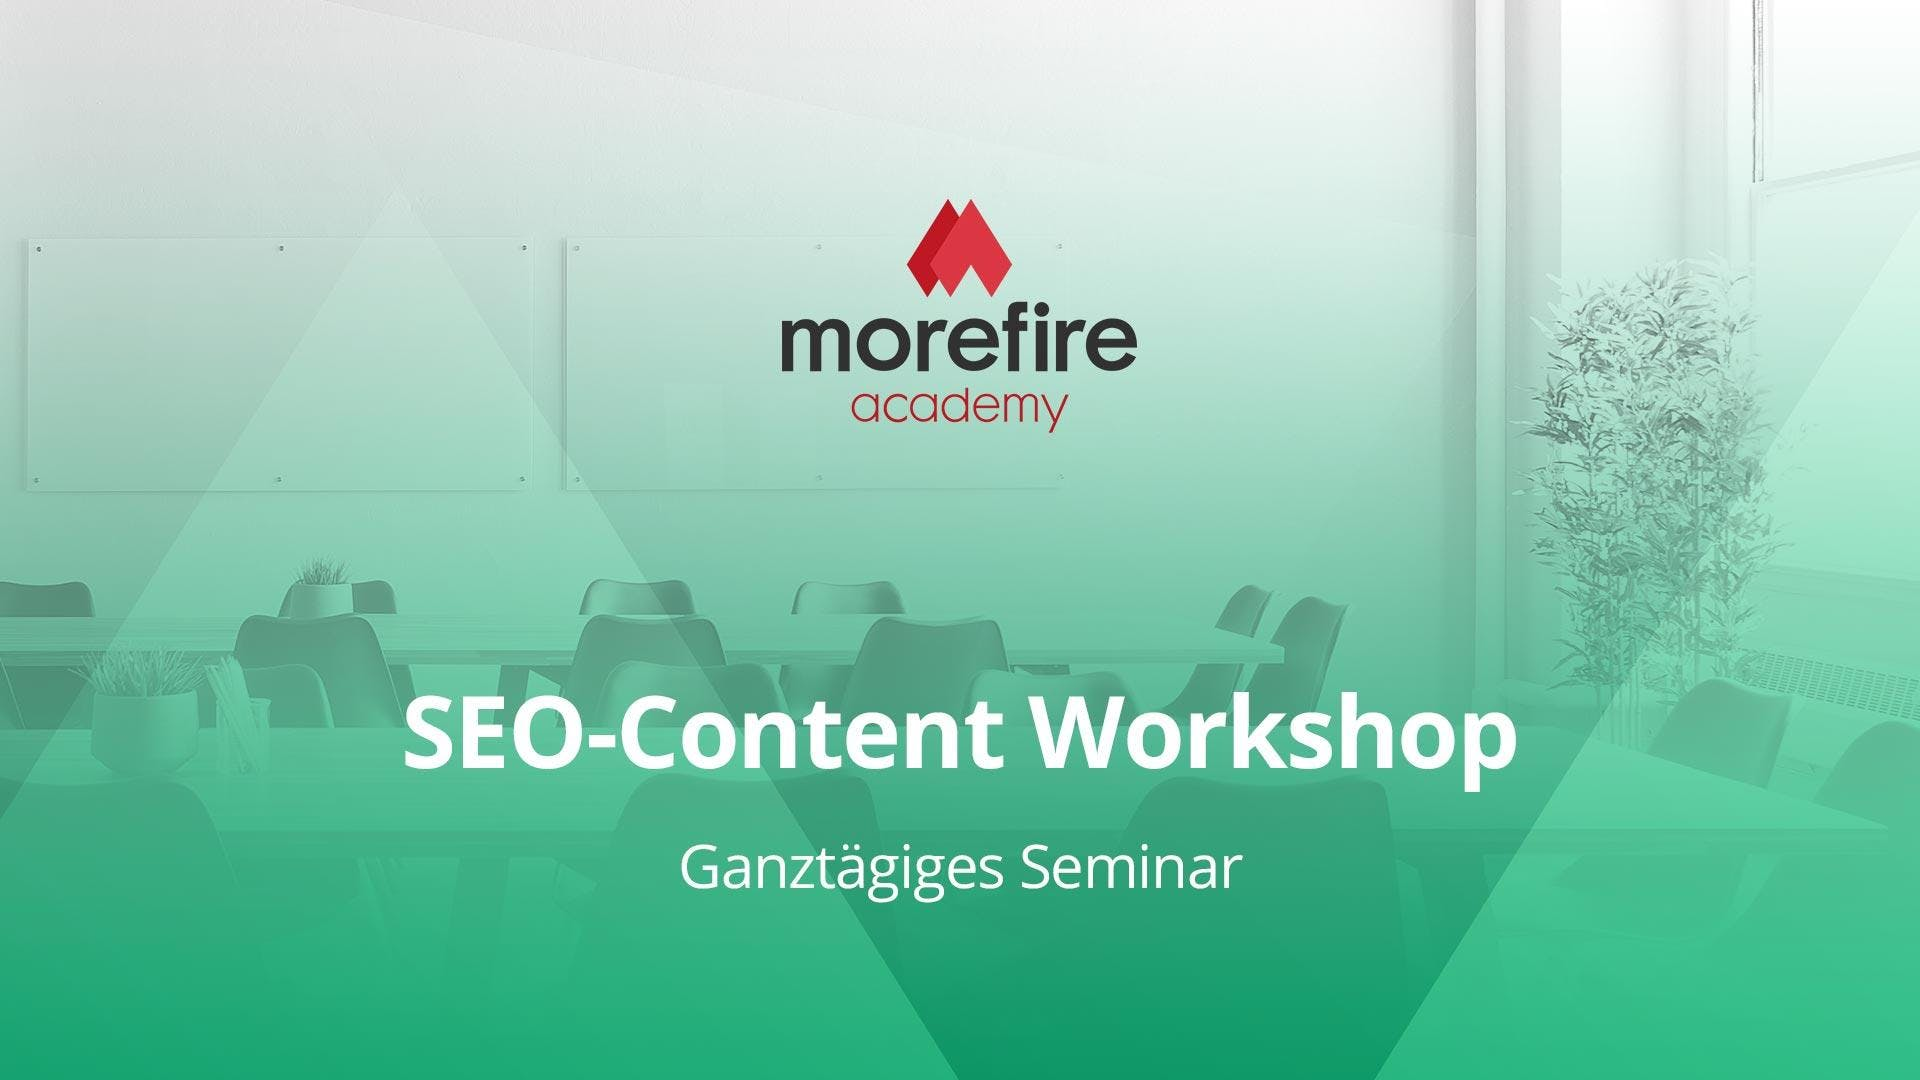 SEO-Content Workshop mit René Dhemant